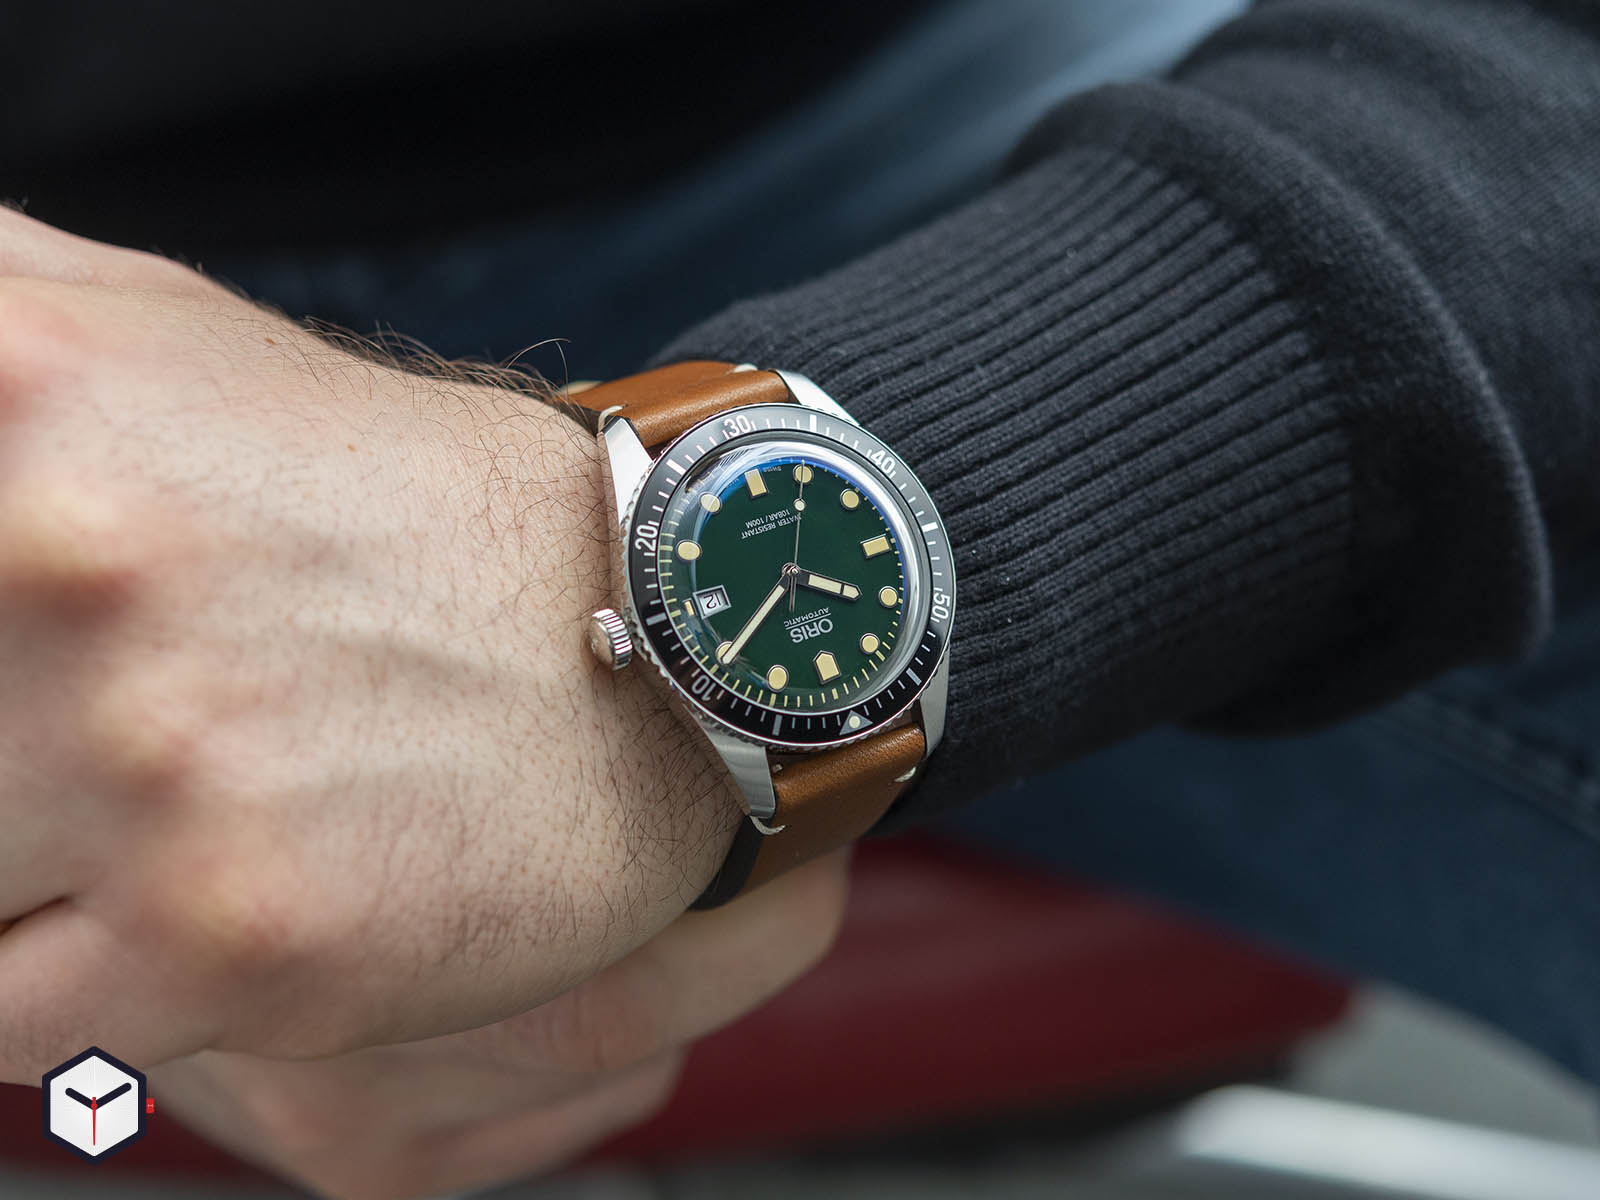 01-733-7720-4057-07-5-21-02-oris-divers-sixty-five-green-dial-7.jpg